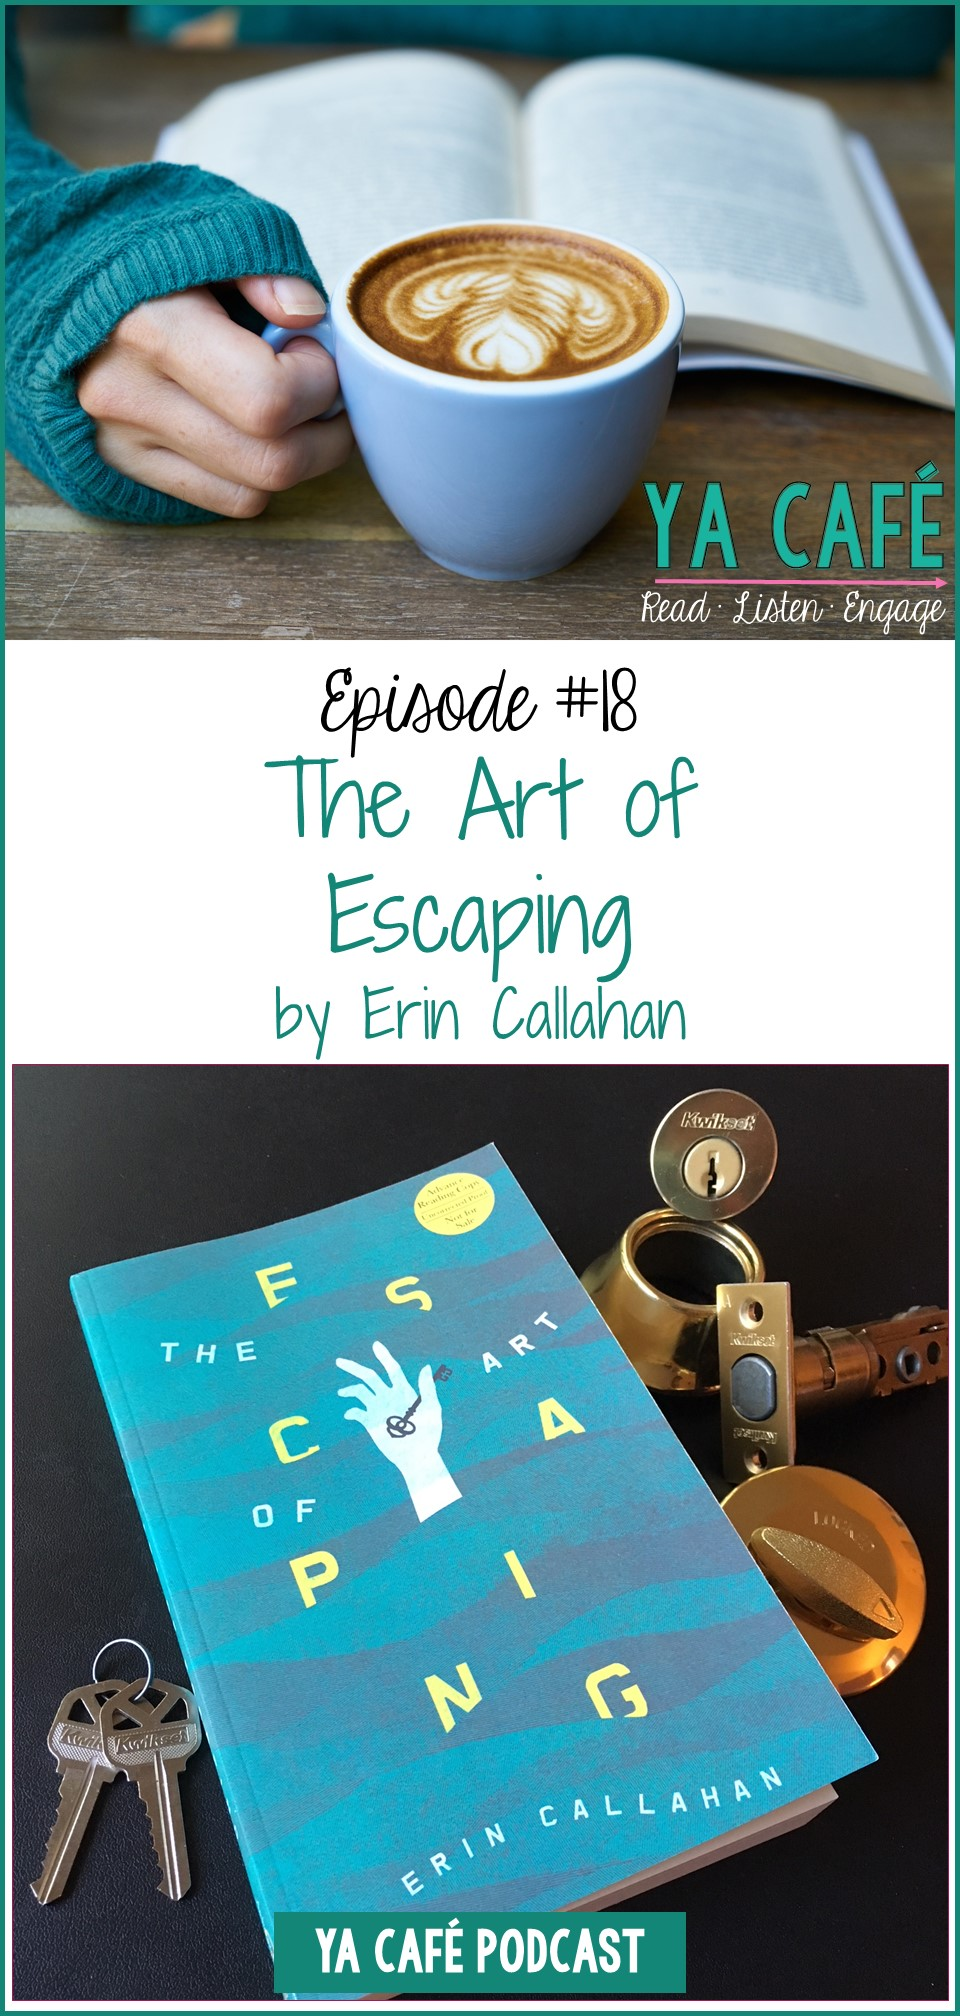 The Art of Escaping by Erin Callahan pin